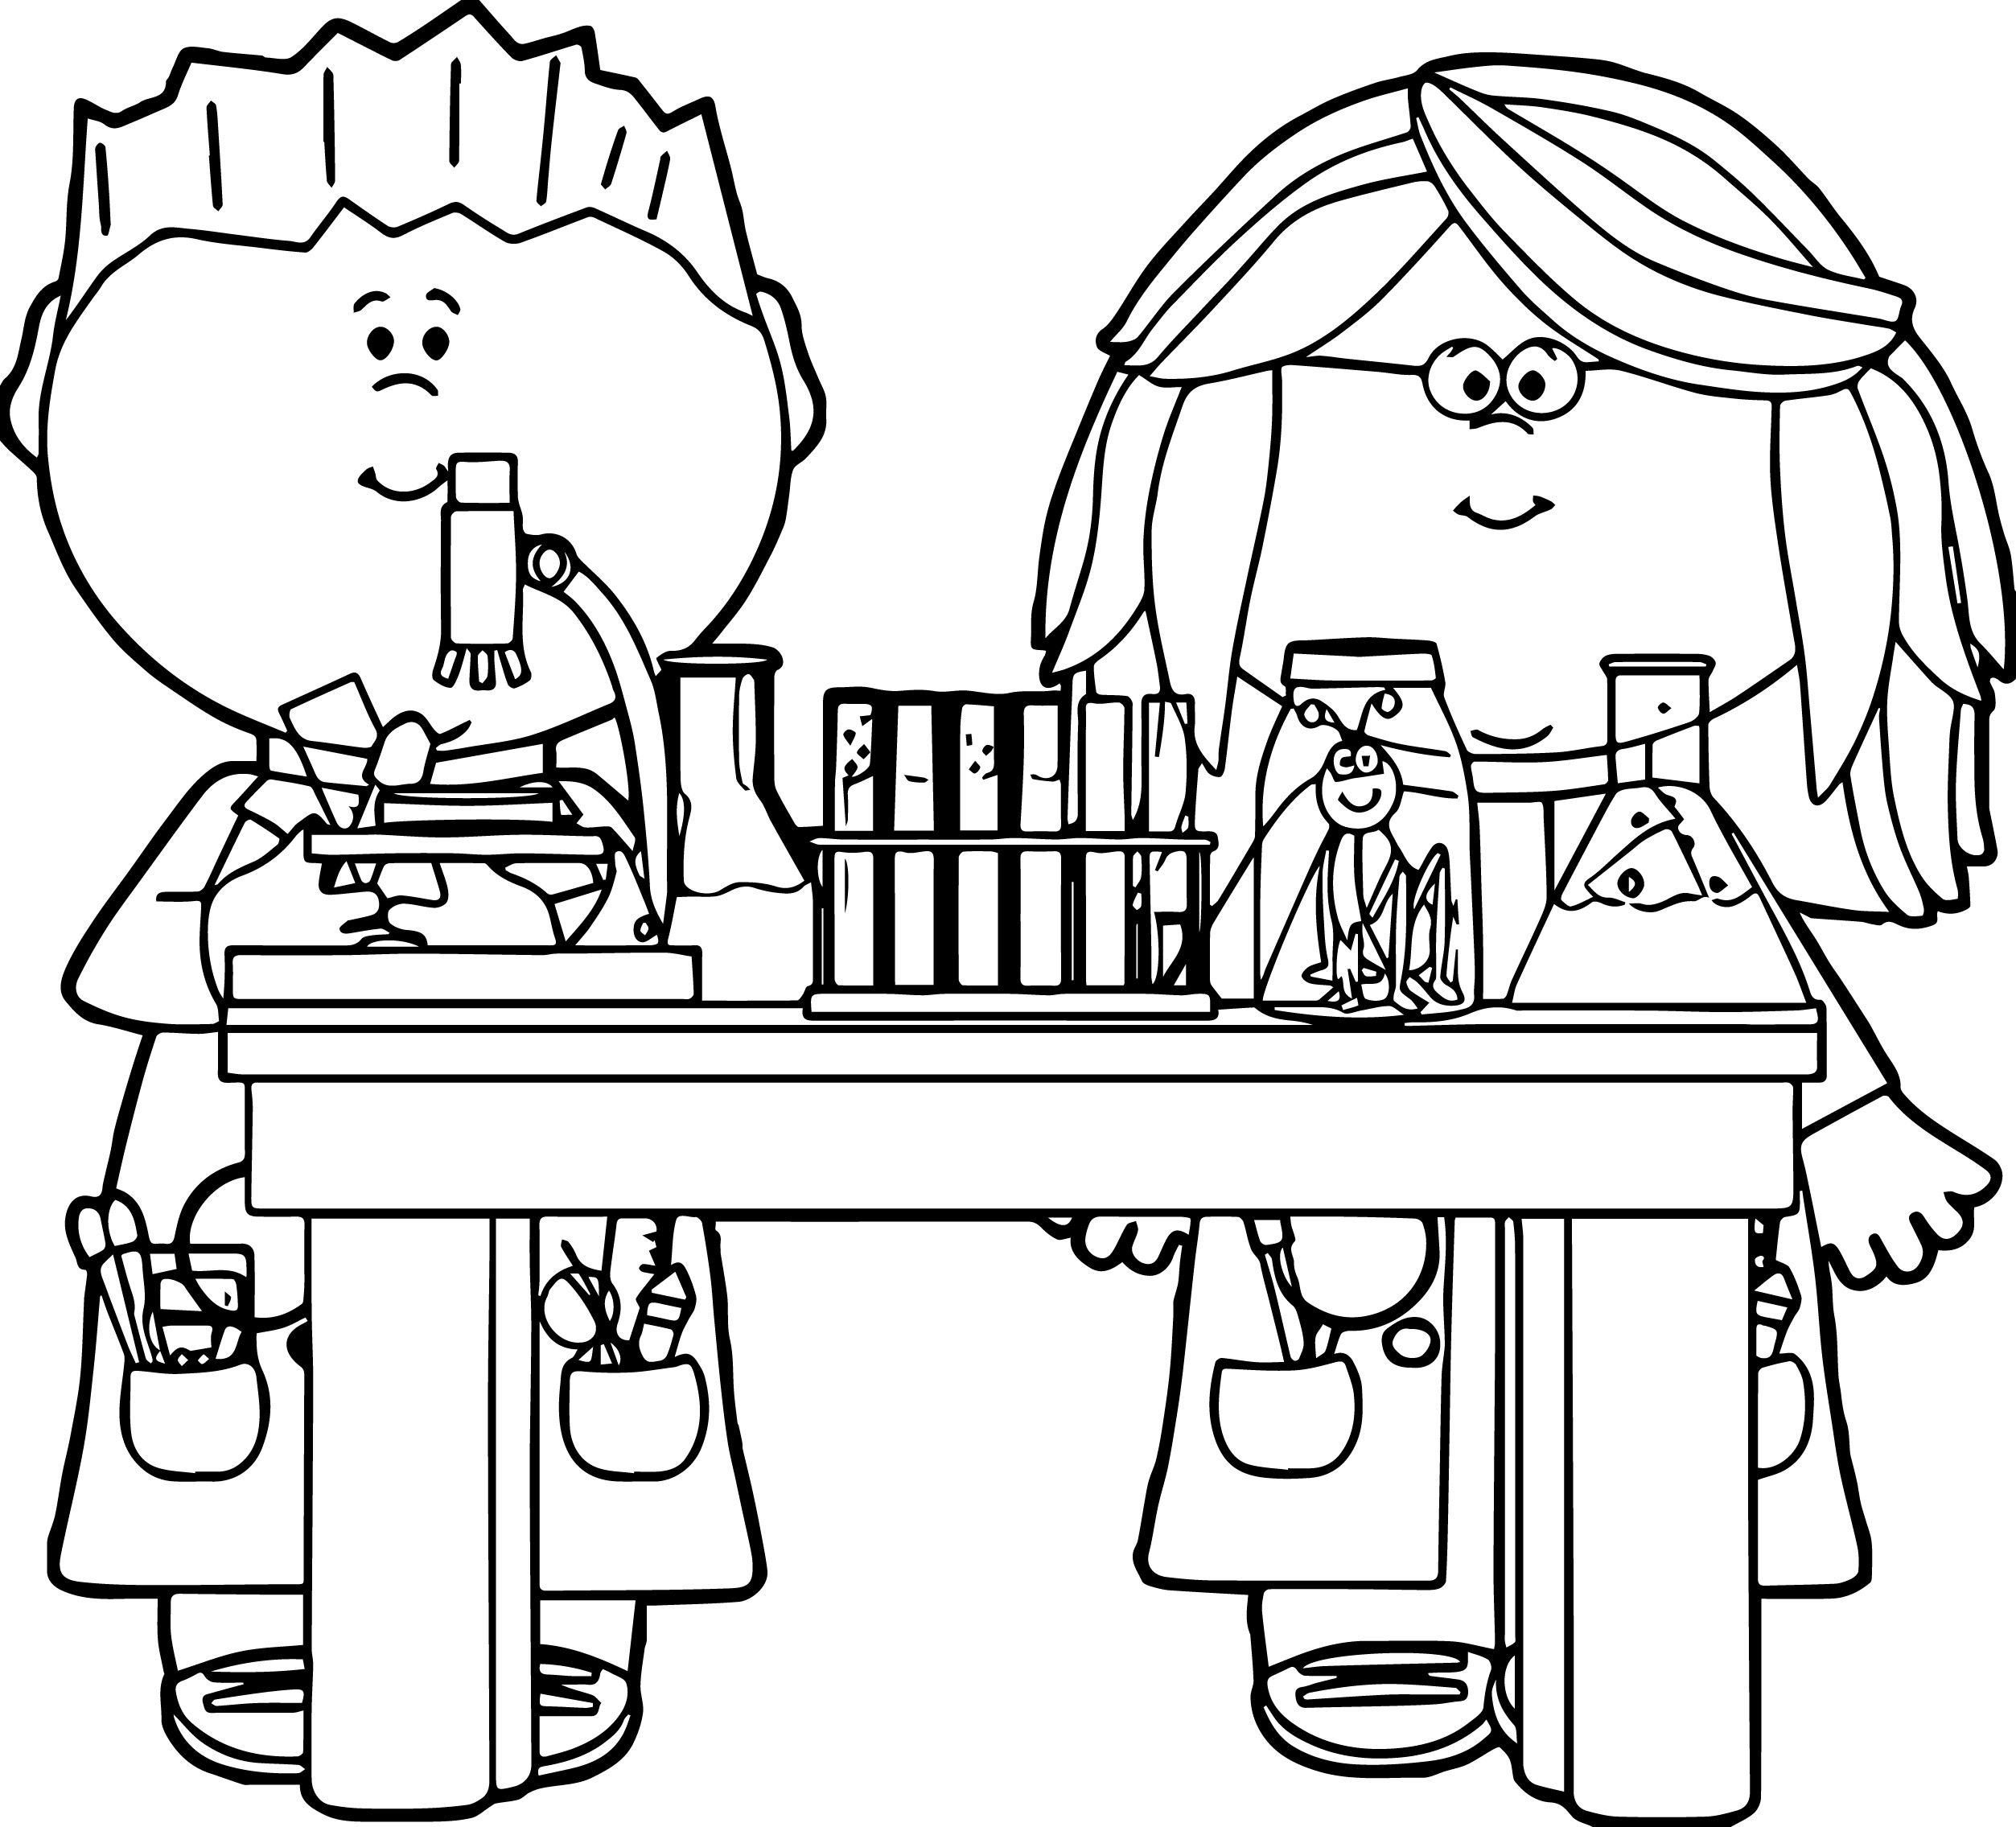 kids in science class clip art kids in science class vector image kids we coloring page - Scientist Coloring Pages Print